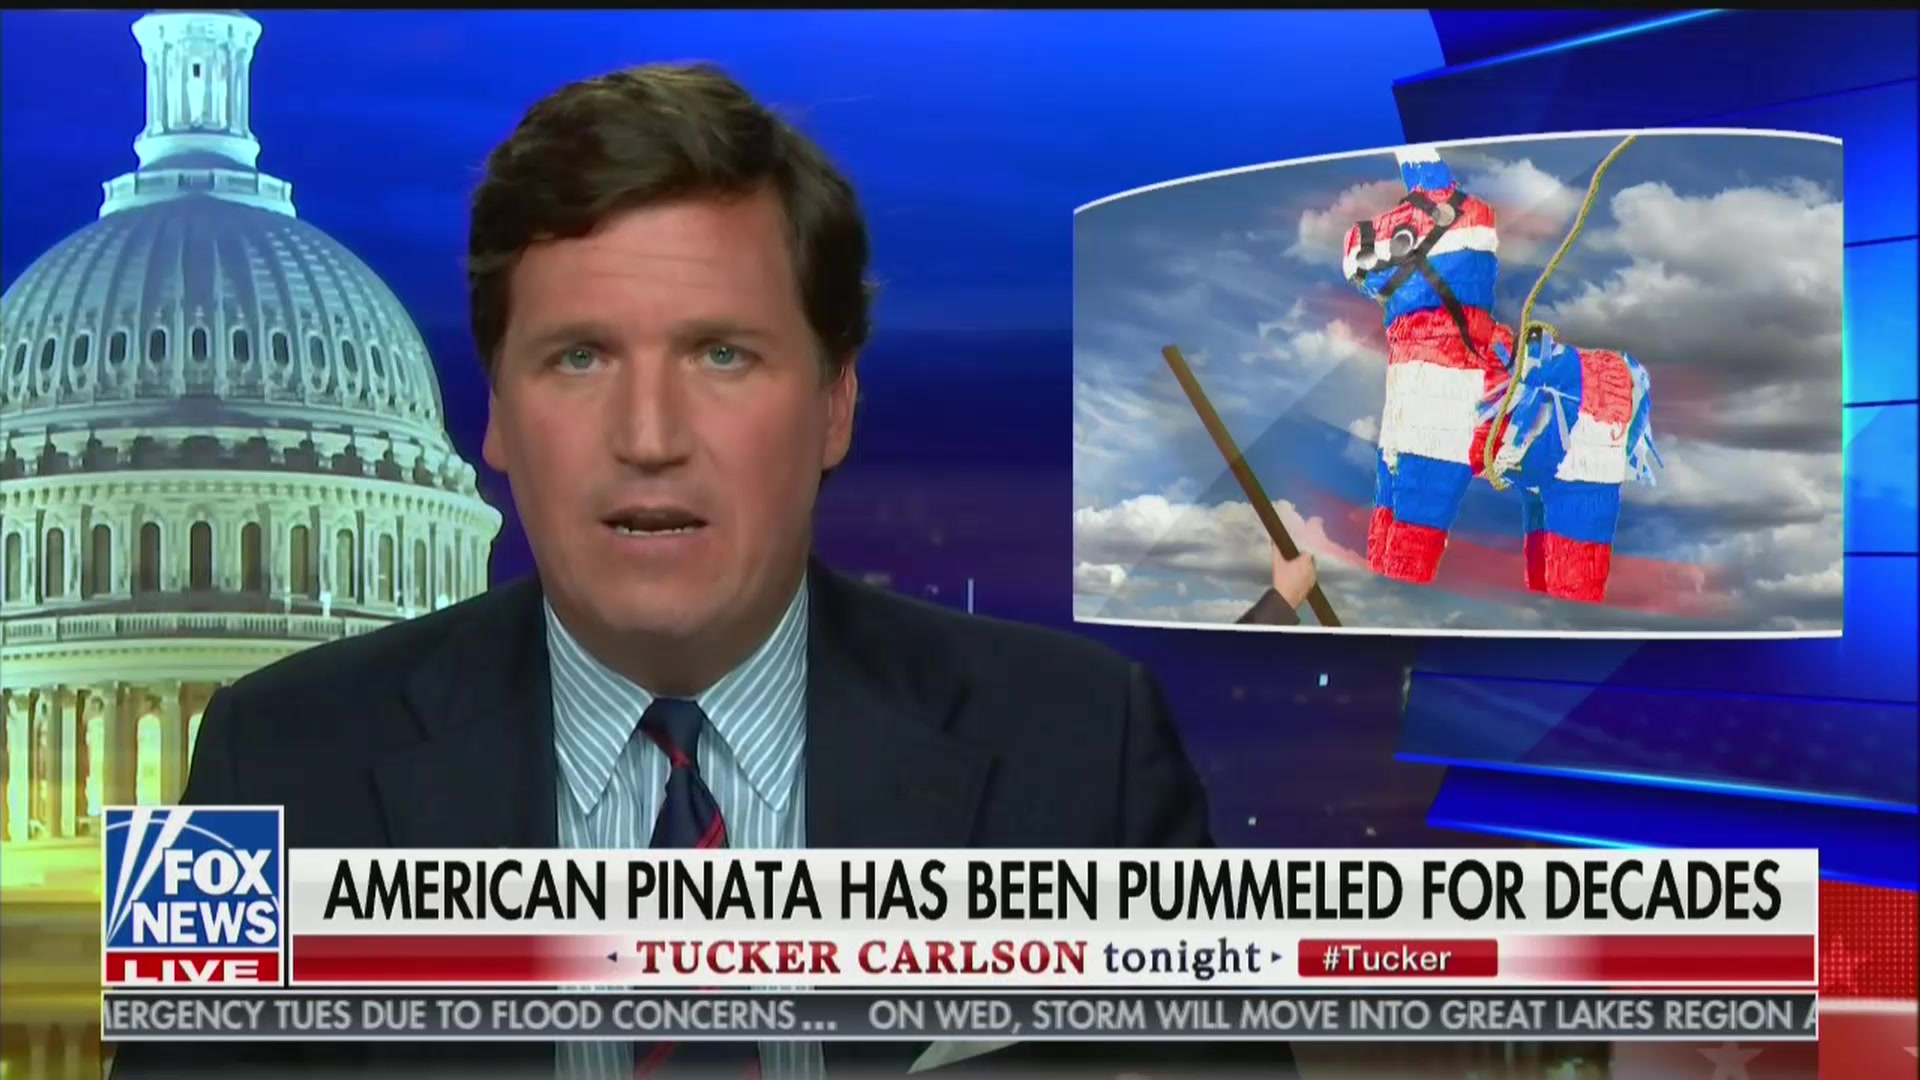 Tucker Carlson: Immigrants Have 'Plundered' Our Wealth and 'Are Coming' For More